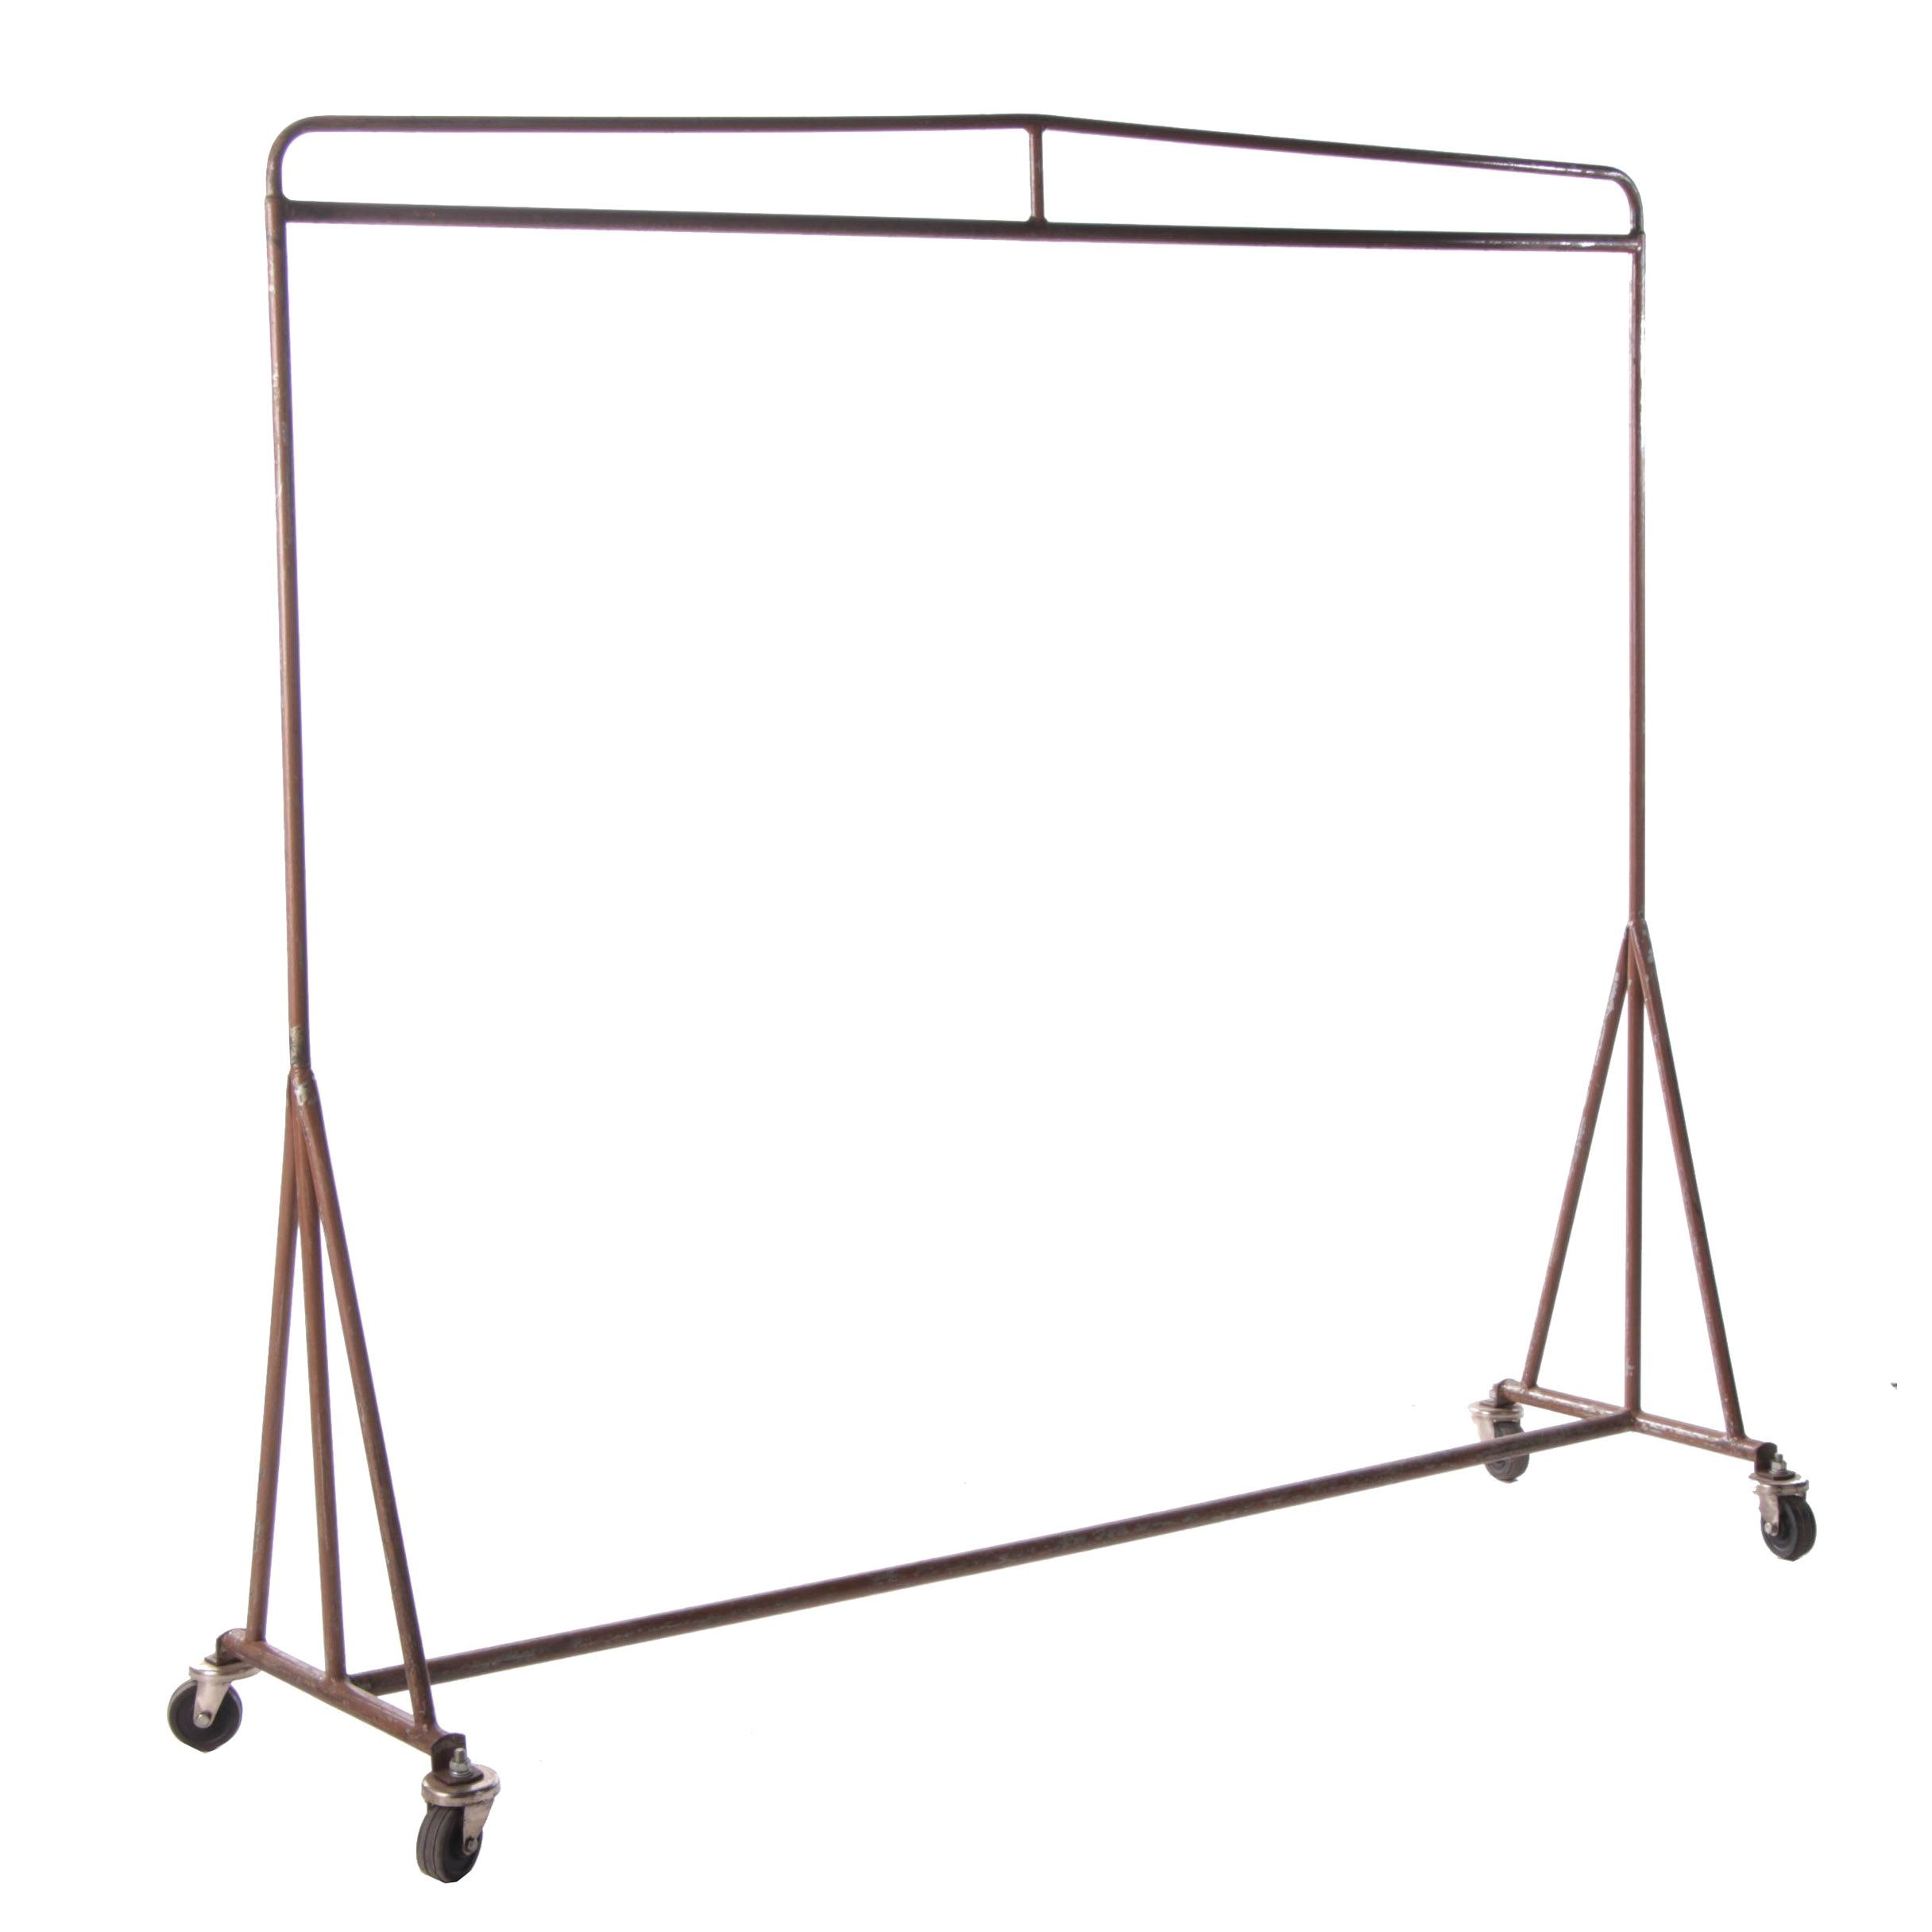 Industrial Style Painted Metal Clothing Rack, Late 20th Century